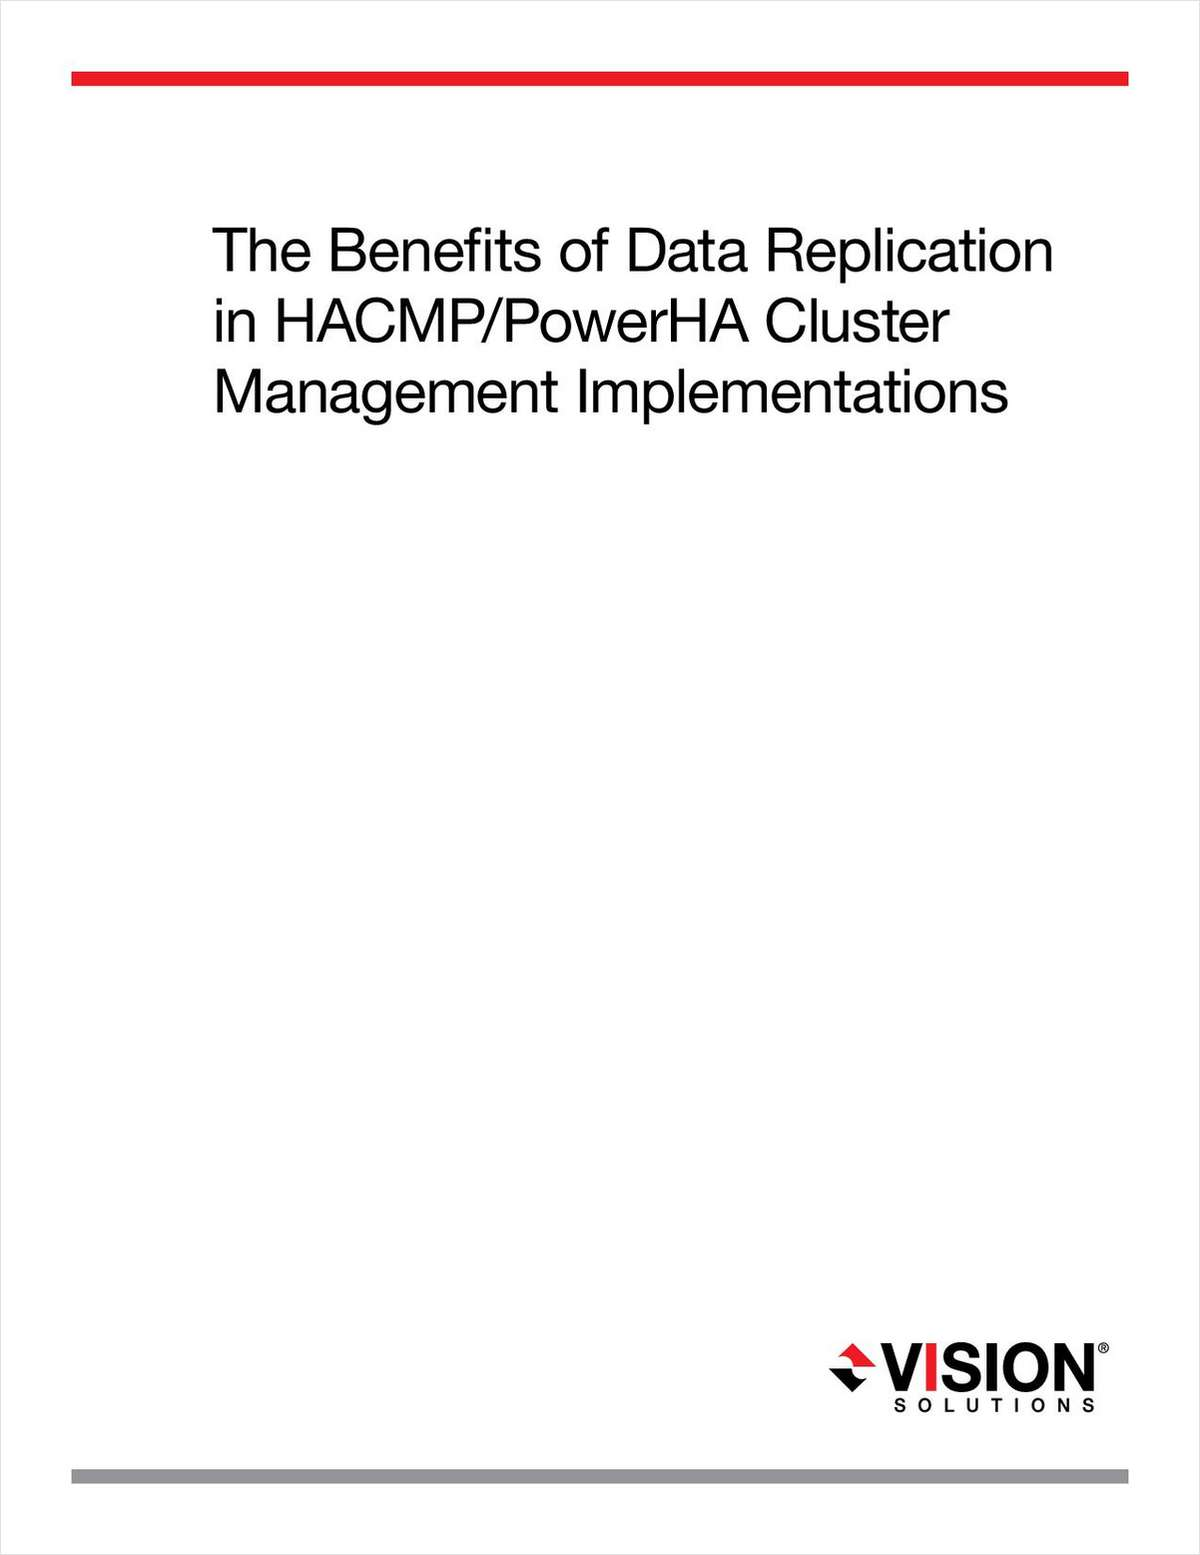 The Benefits of AIX Data Replication in HACMP Clusters